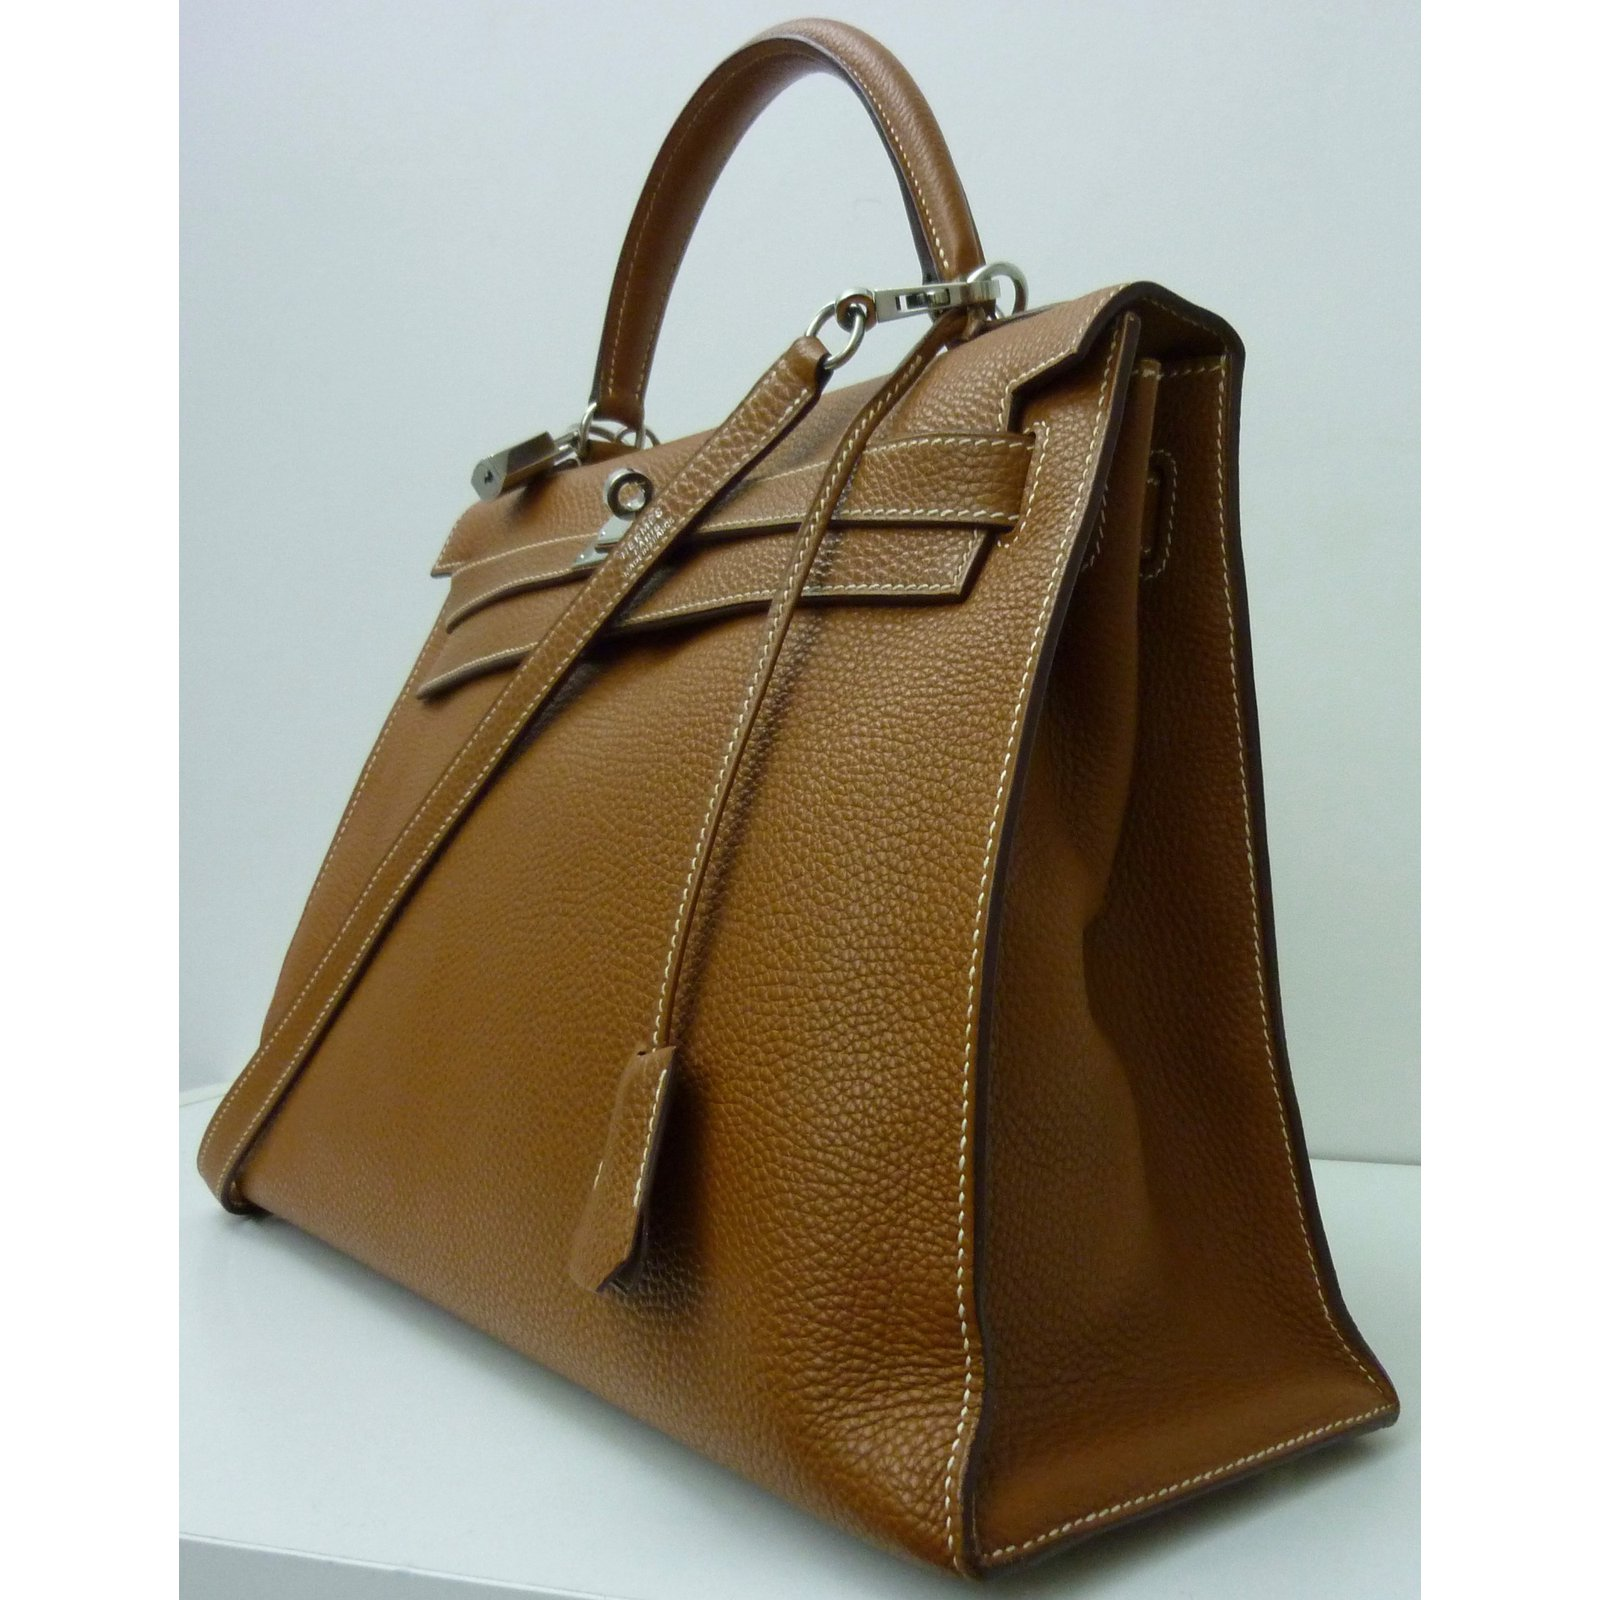 30f46de5cbbb Hermès Kelly 32 sellier togo Handbags Leather Caramel ref.53290 ...